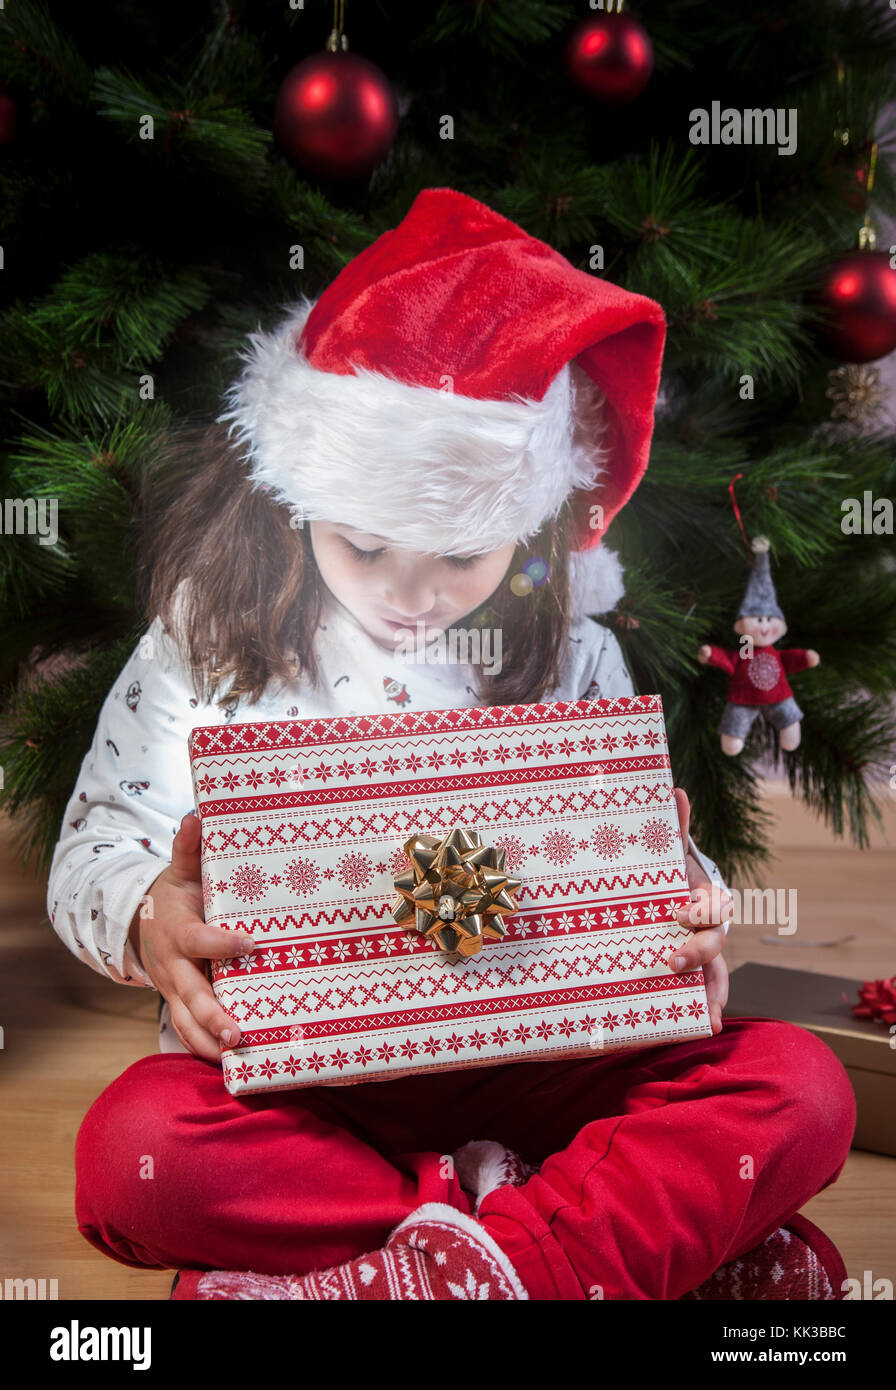 Little girl opening her present beside Christmas tree. She is illuminated by shine from box - Stock Image